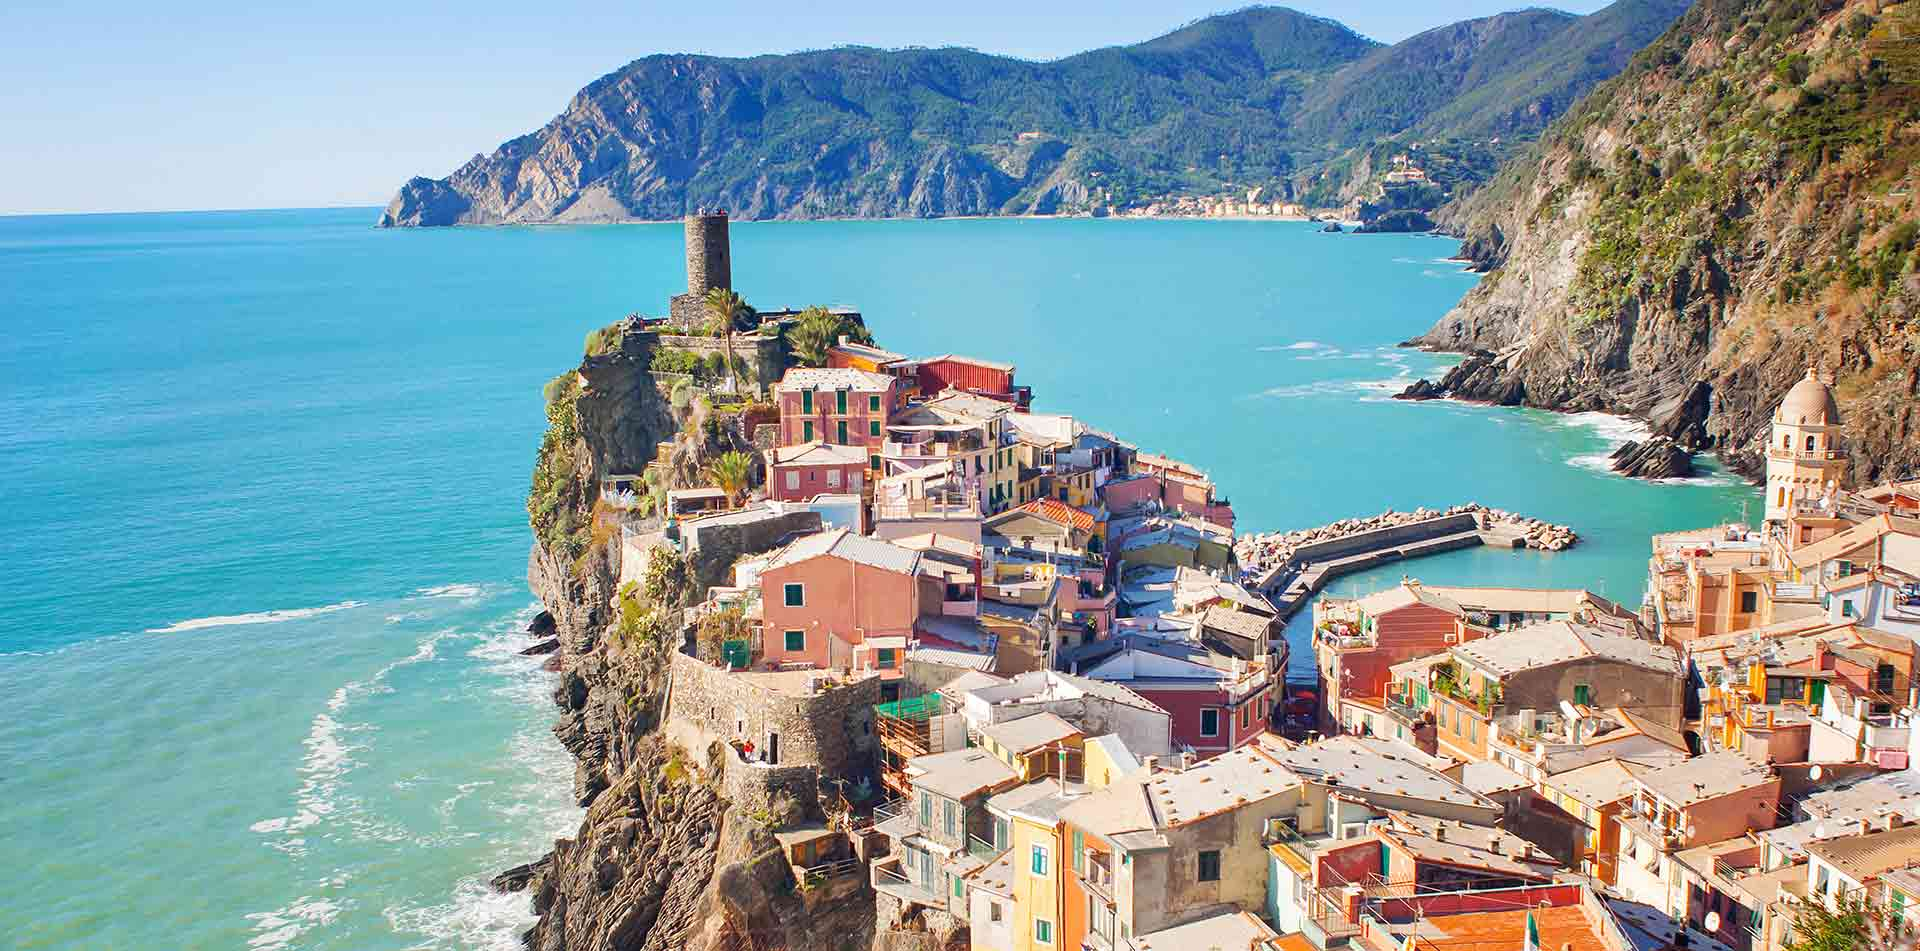 Europe Italy Cinque Terre aerial view of colorful village of Vernazza overlooking the sea - luxury vacation destinations